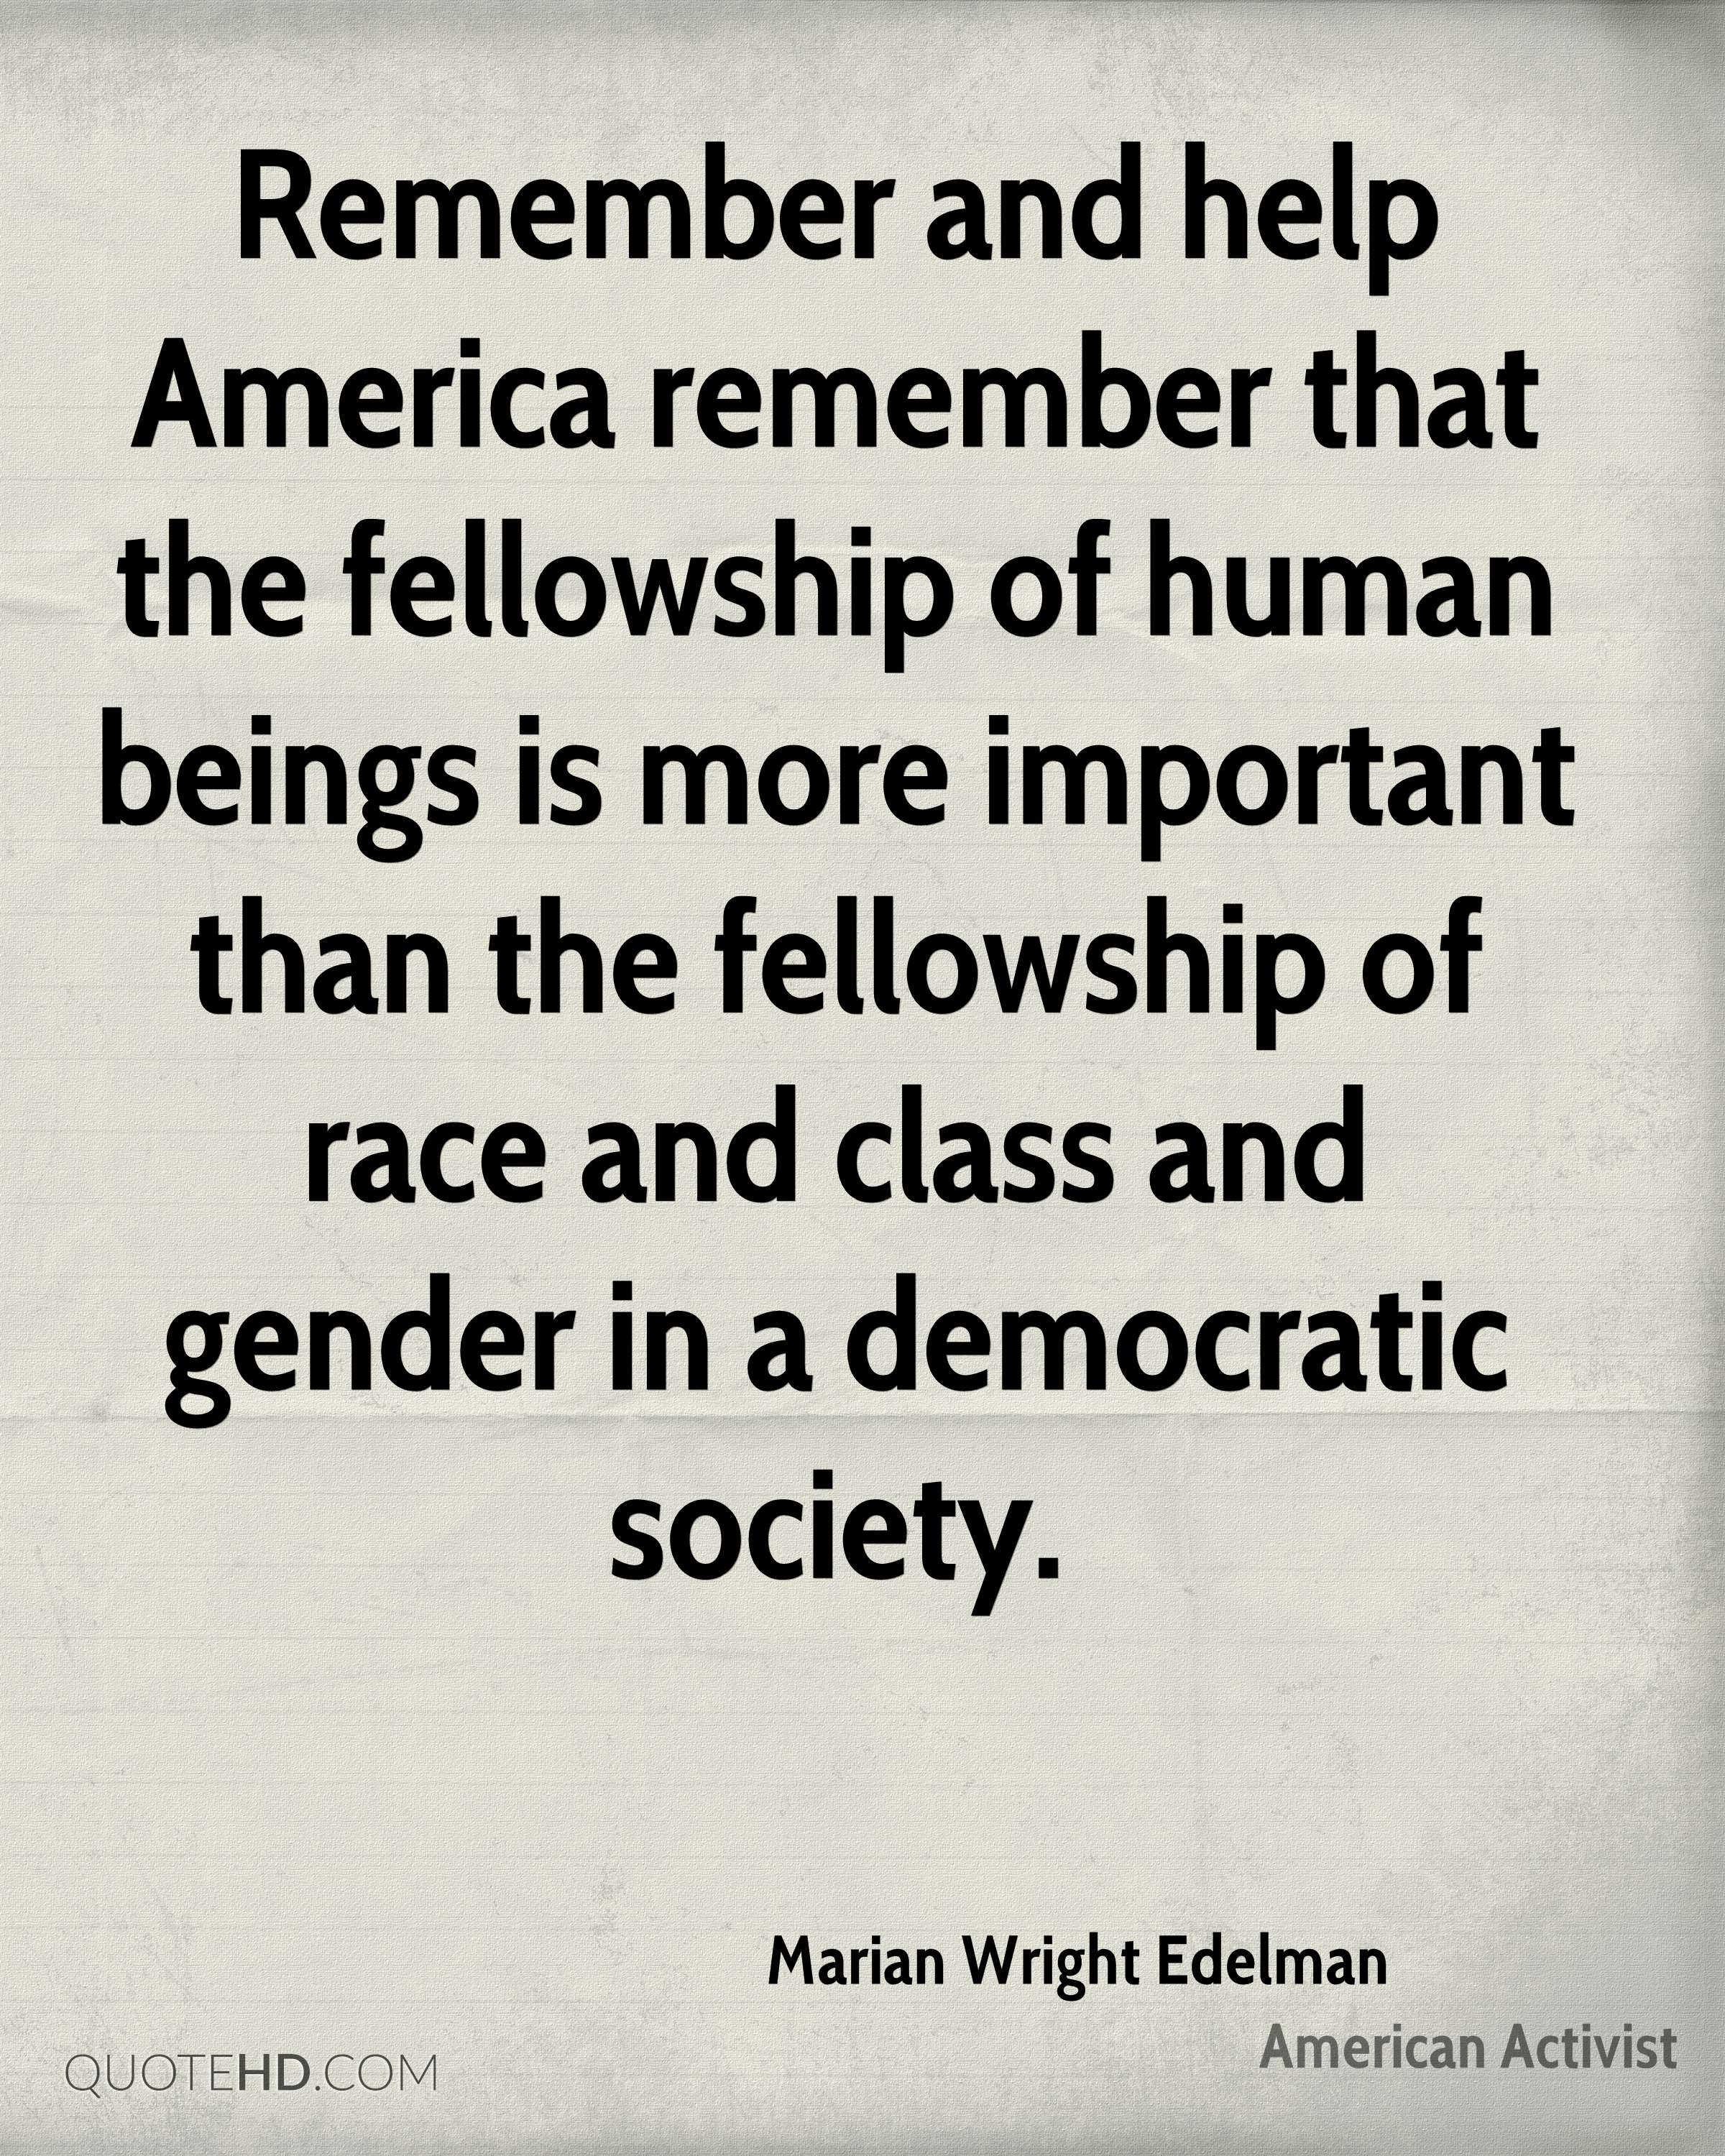 Remember and help America remember that the fellowship of human beings is more important than the fellowship of race and class and gender in a democratic society.